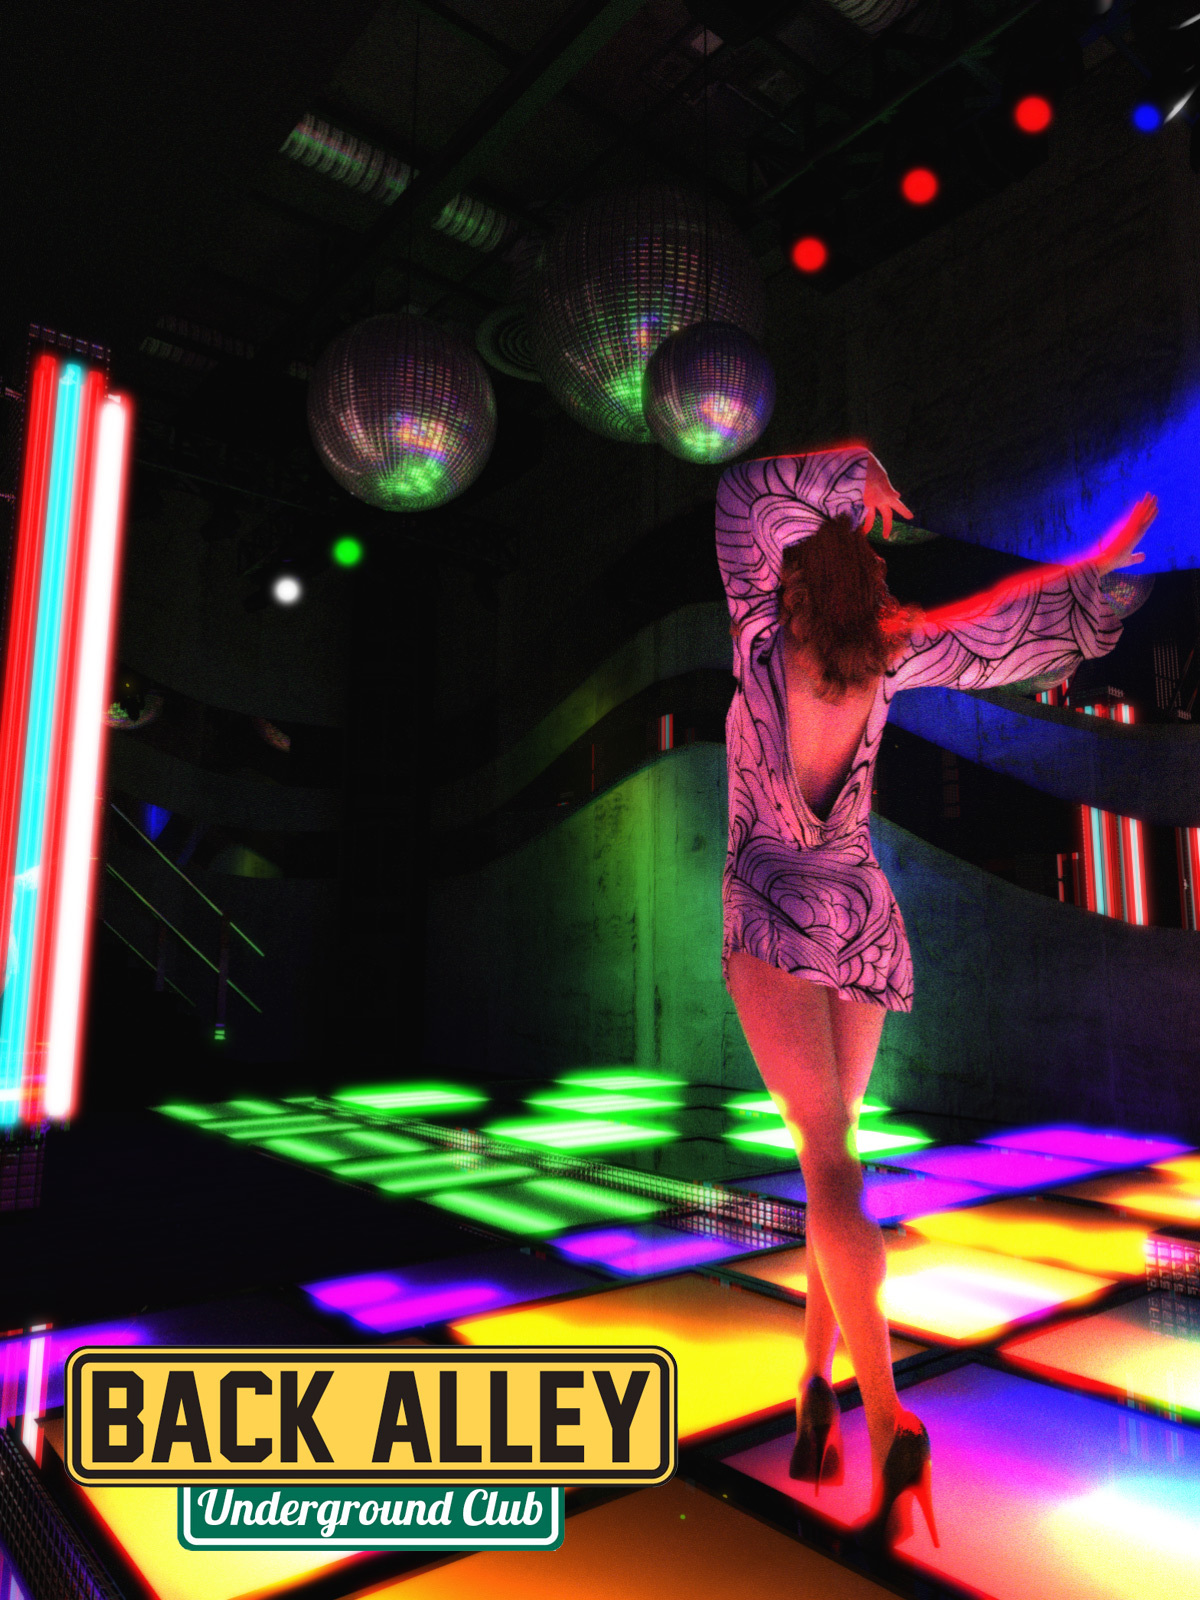 Back Alley Underground Club for DS Iray by powerage